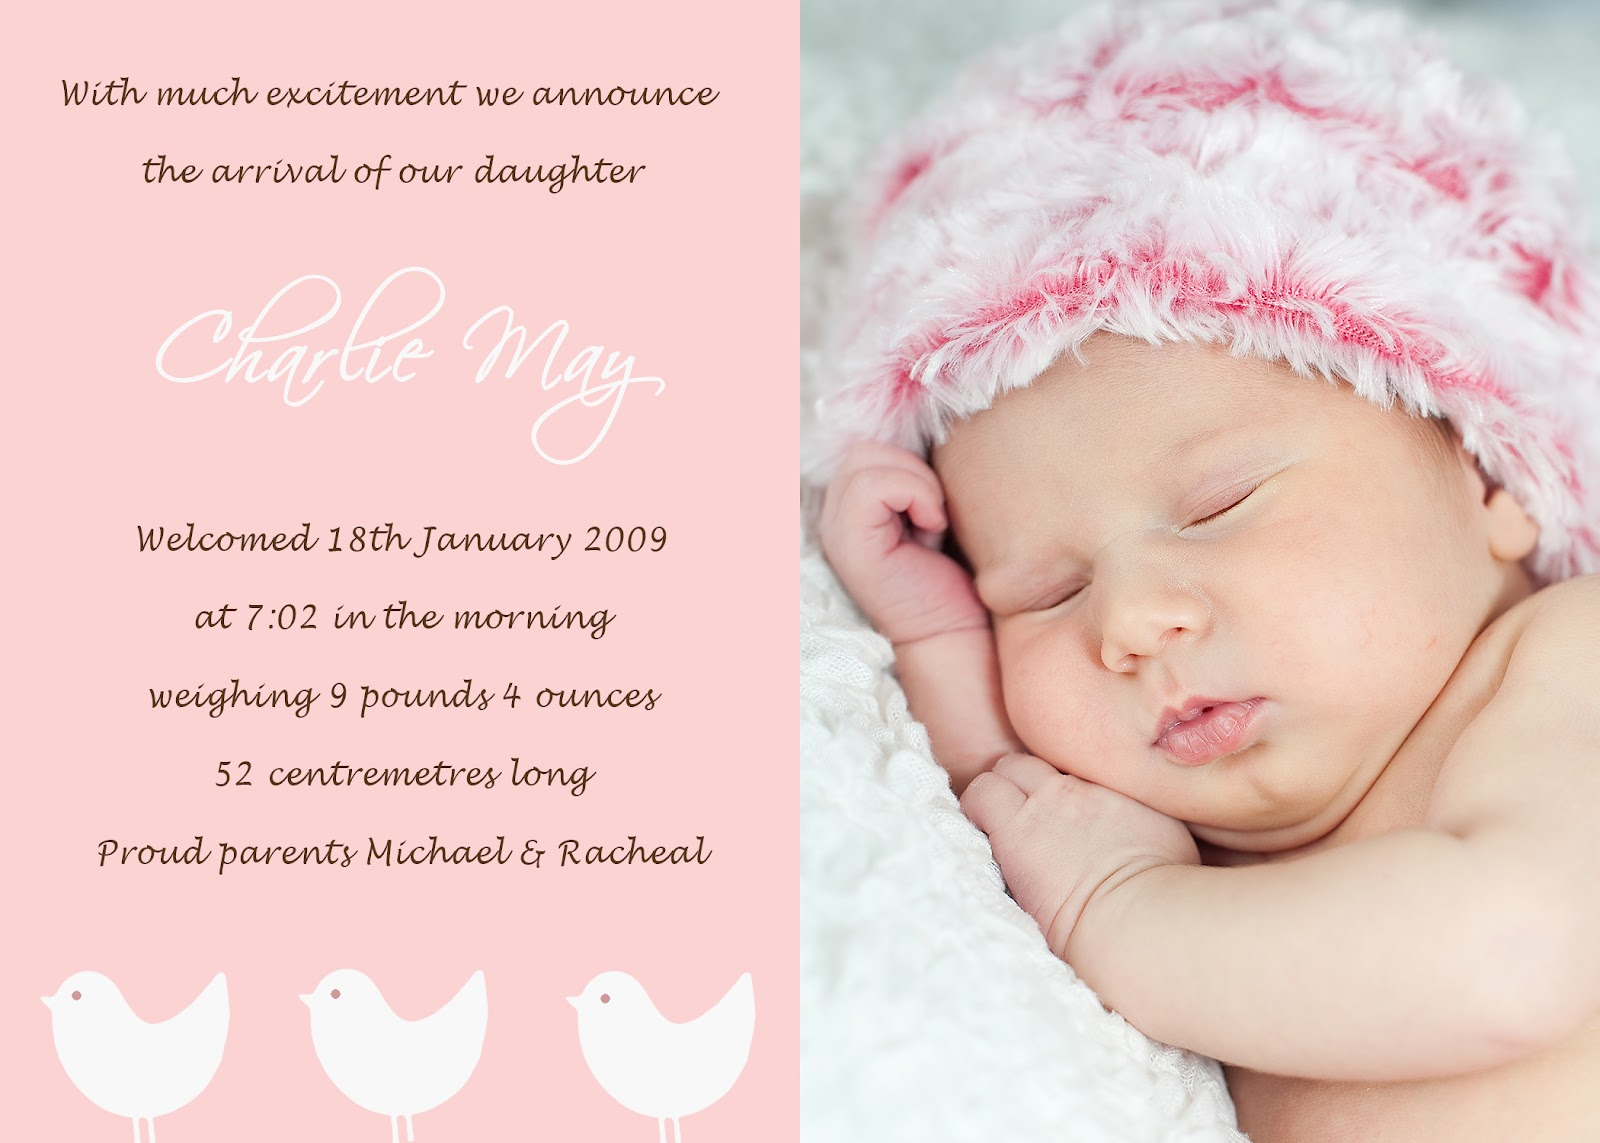 Free Christening Invitations For Boys – Sample Birth Announcement Wording